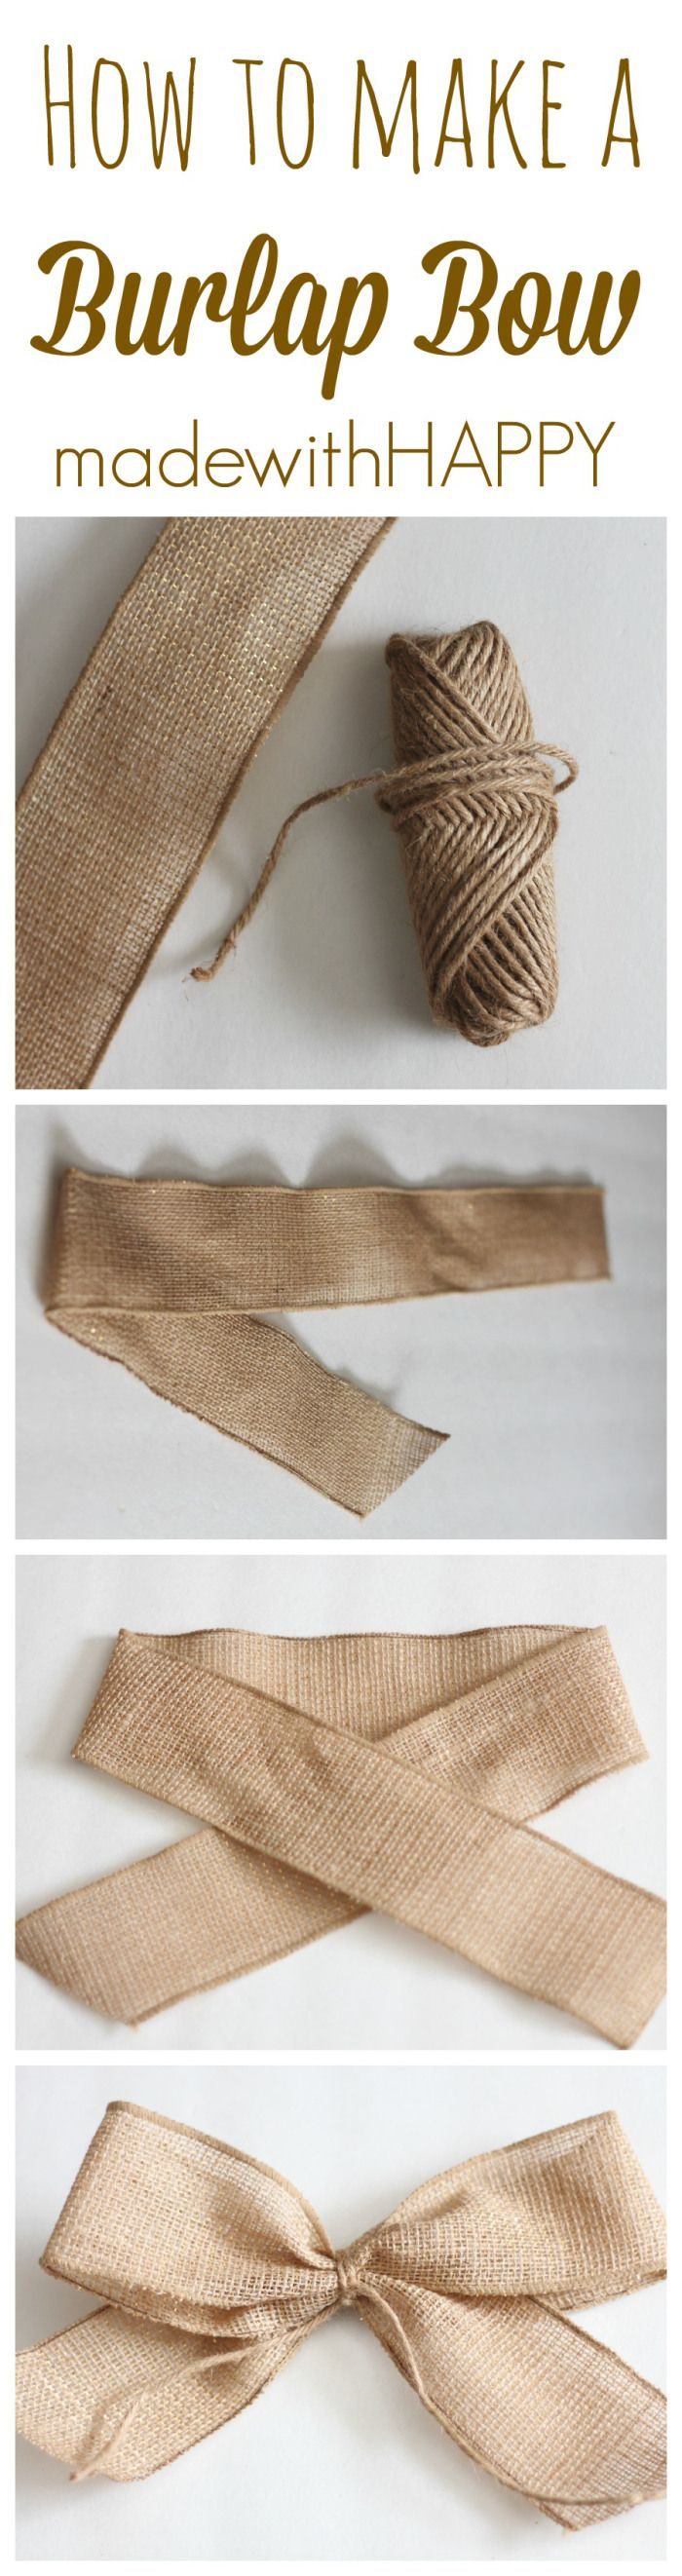 How to make a burlap bow | perfect for decor for all seasons.